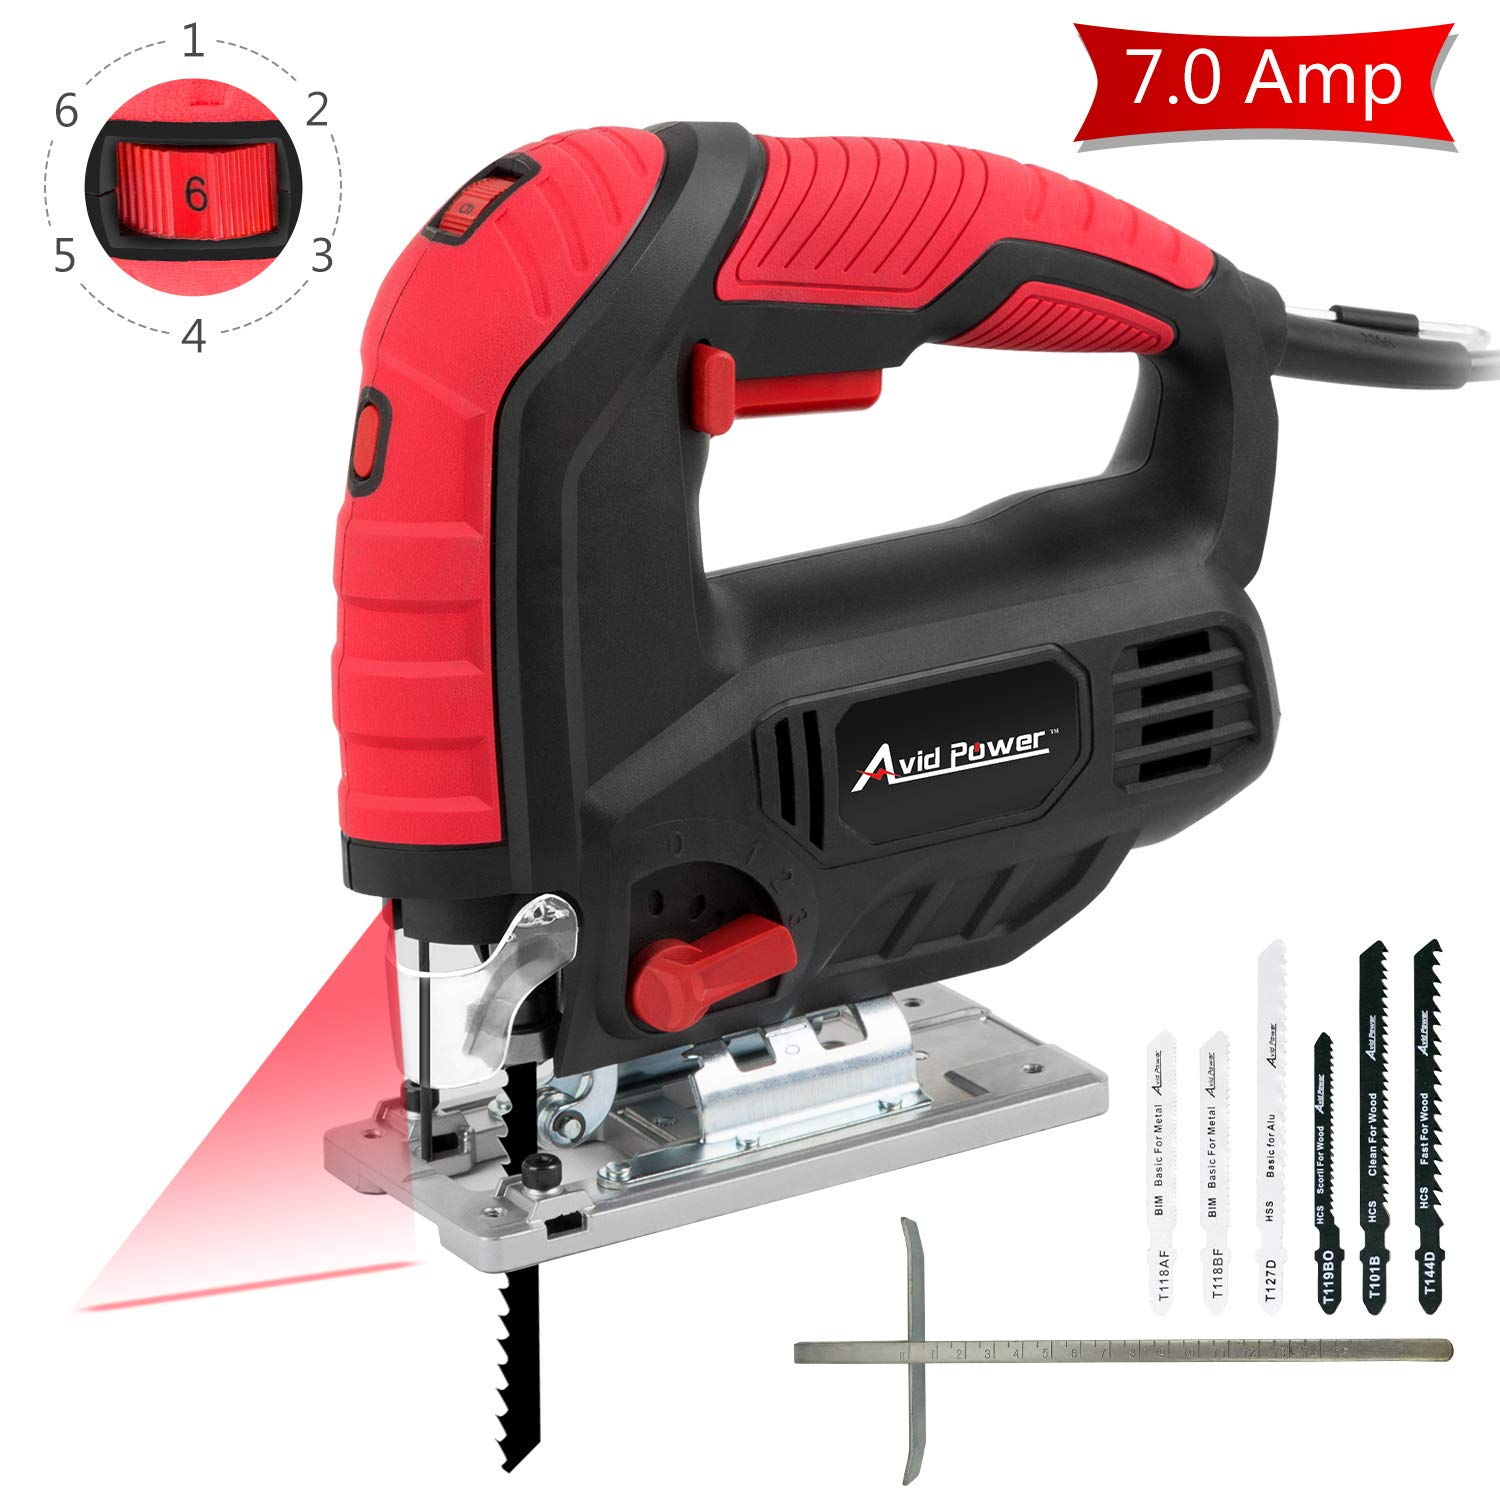 Jigsaw, Avid Power 7.0A 3000 SPM Jig Saw with Laser Guide, Variable Speed, Bevel Angle 0 -45 , 6PCS Blades and Scale Ruler